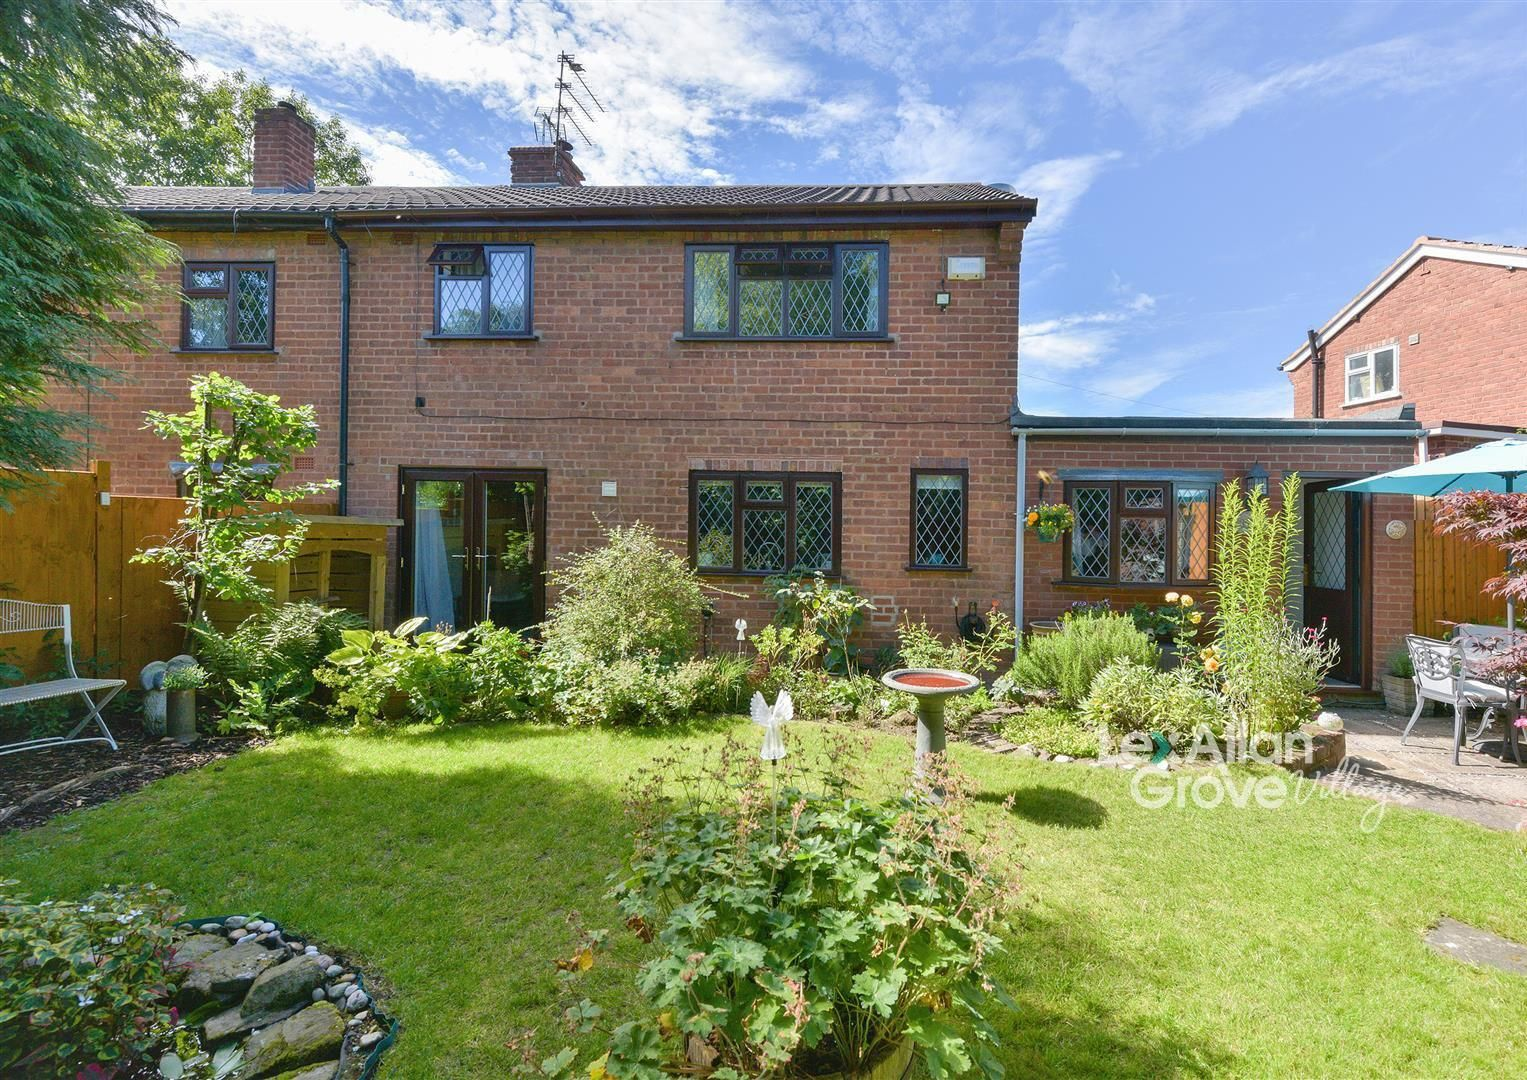 3 bed house for sale in Belbroughton, DY9